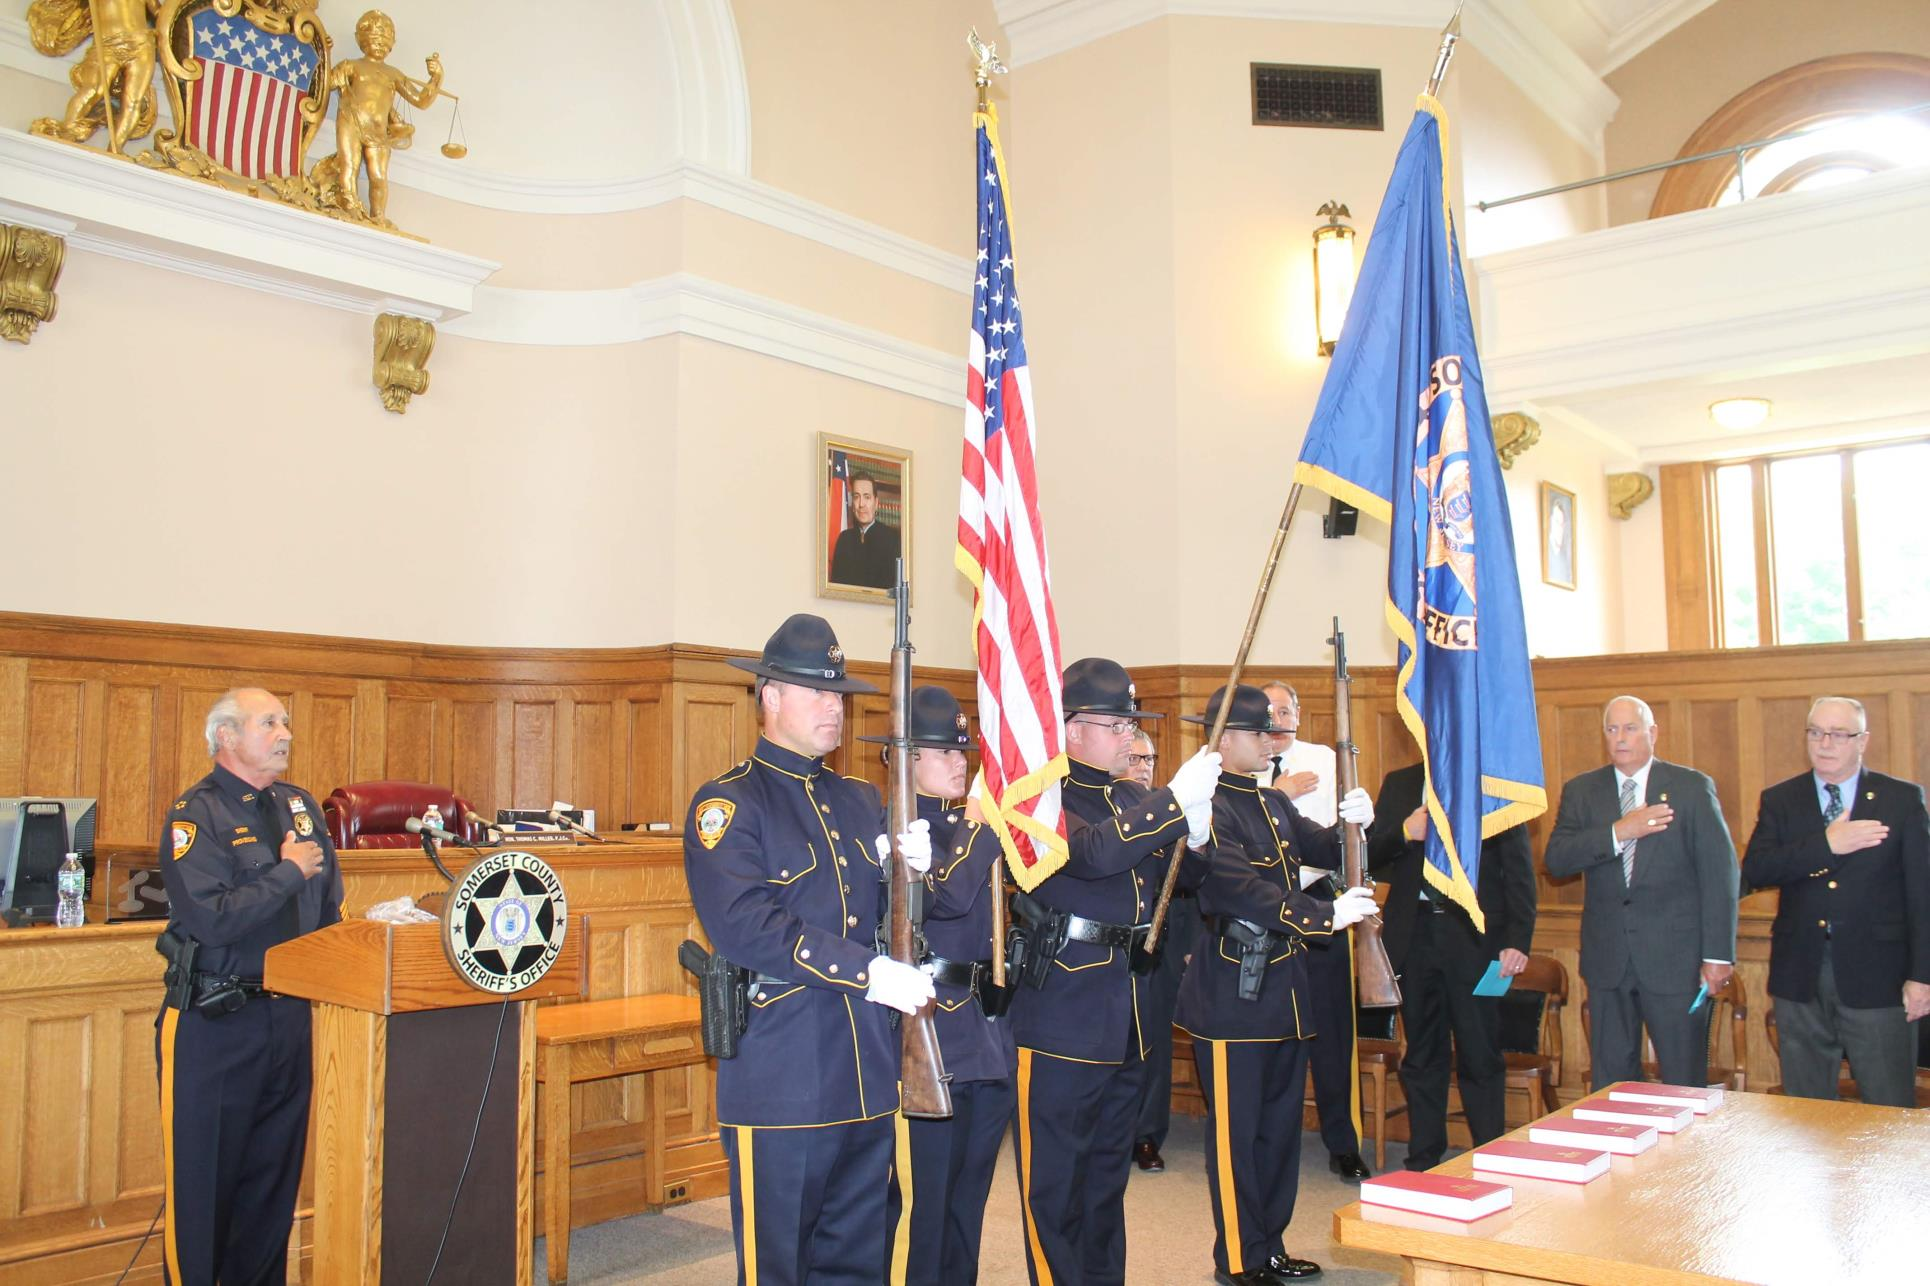 Sheriff & Honor Guard in historic courthouse